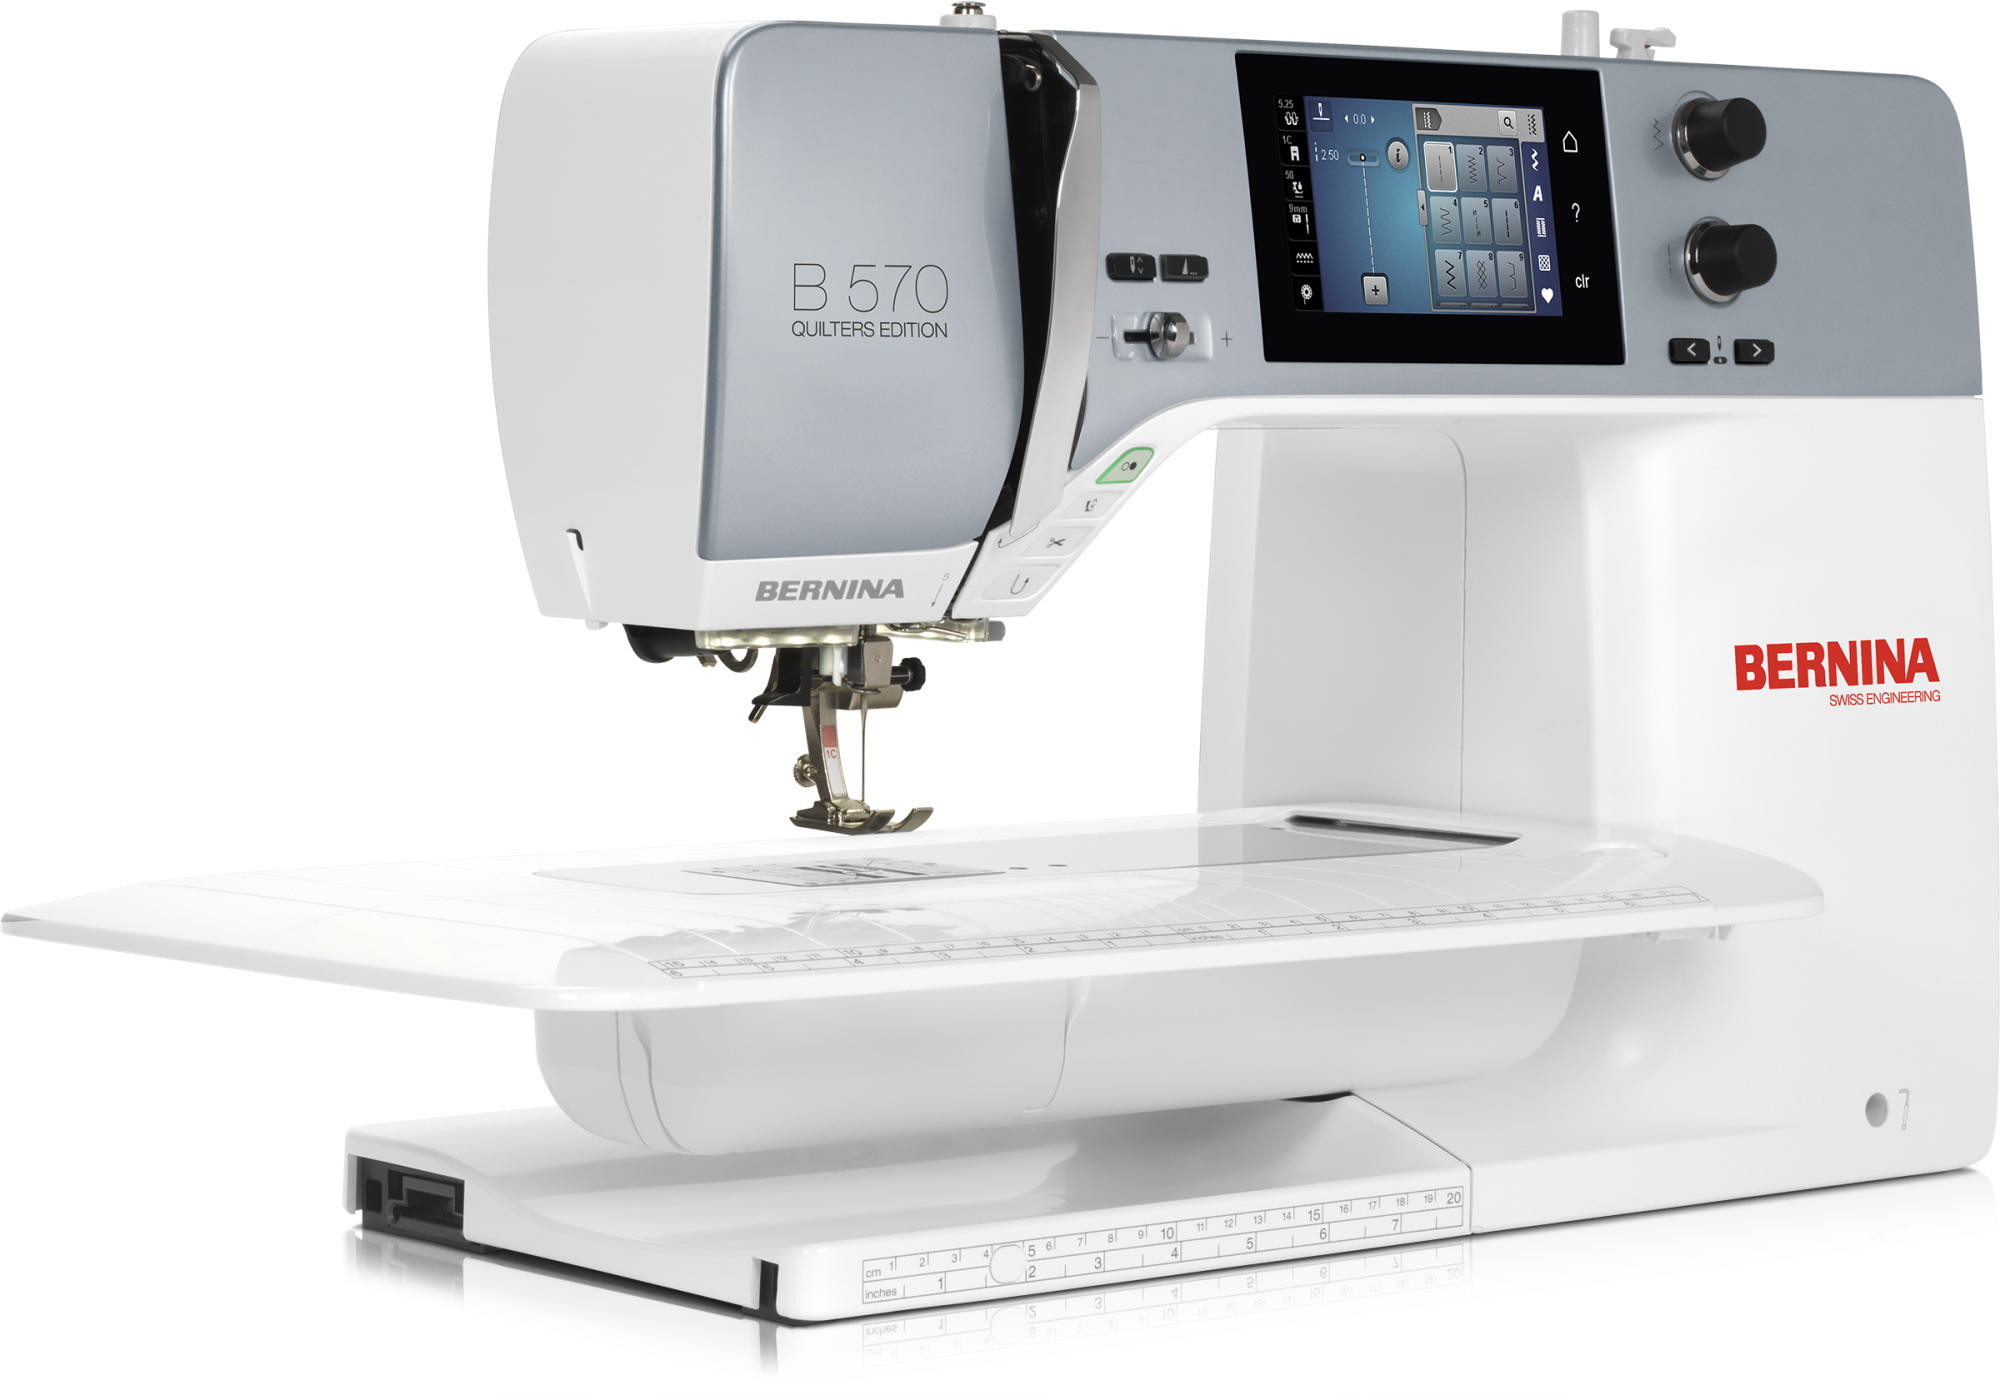 BERNINA 570 Quilter's Edition